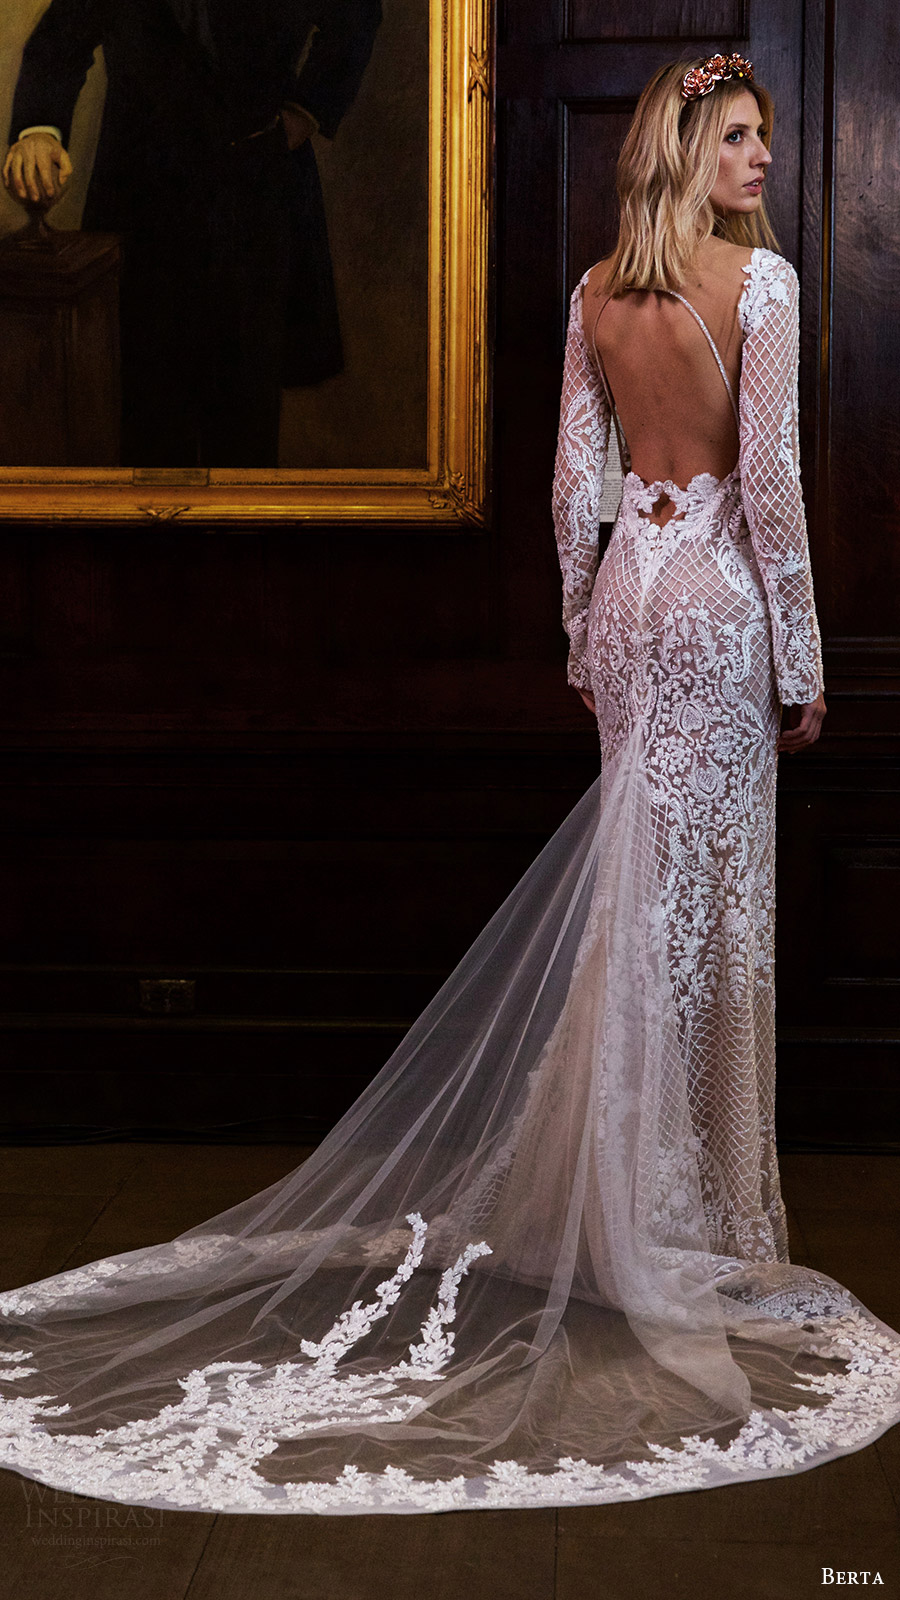 berta wedding dresses bridal fashion week fall berta wedding dresses Berta sheer wedding gown with beading and floral details for Fall